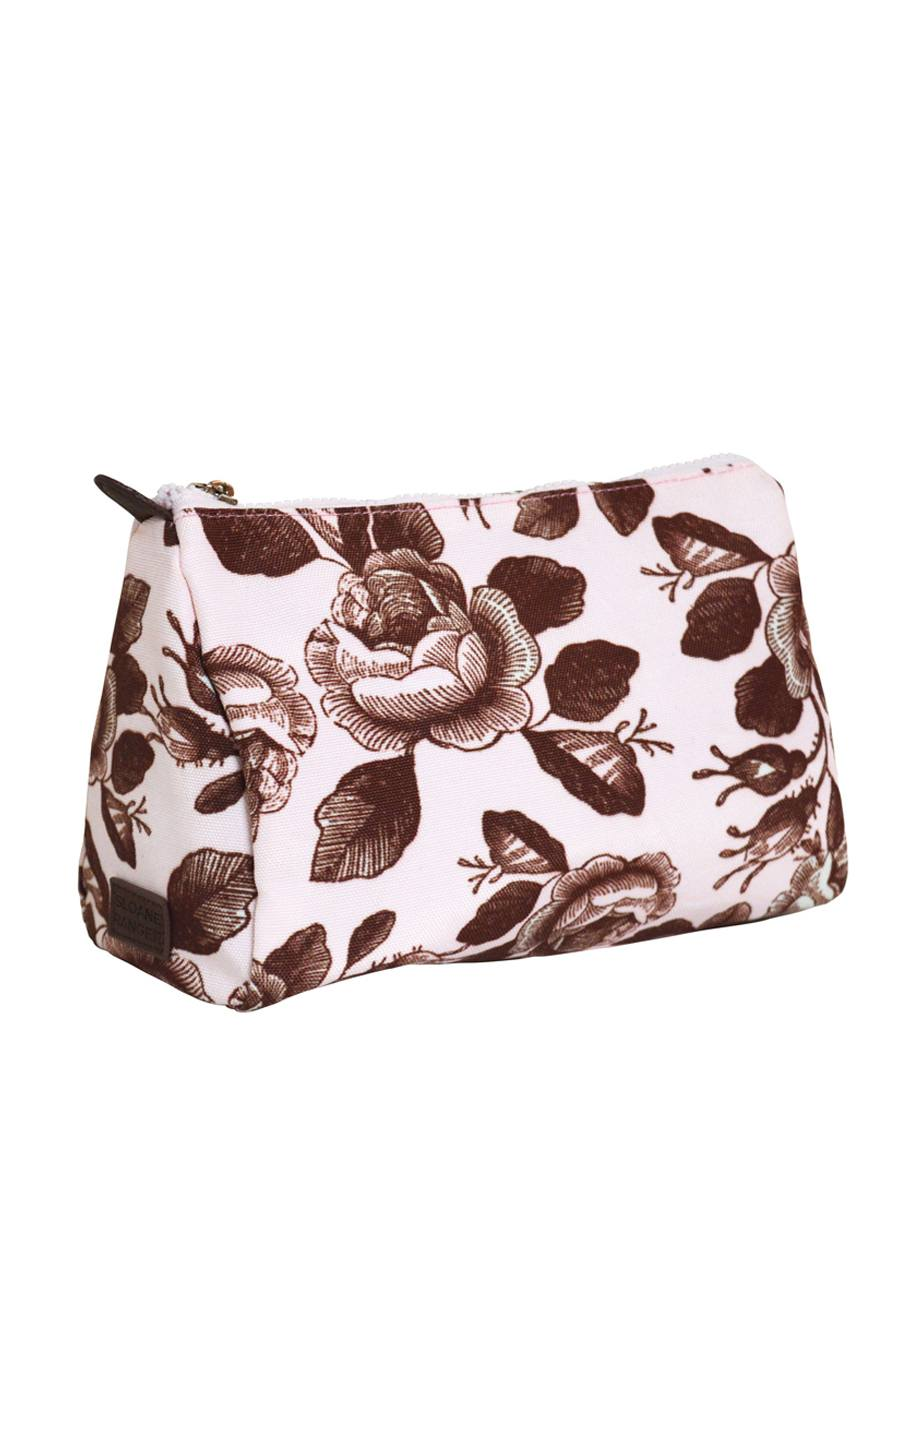 Sloane Ranger-tea time cosmetic pouch. - FINAL SALE-SR ID Case